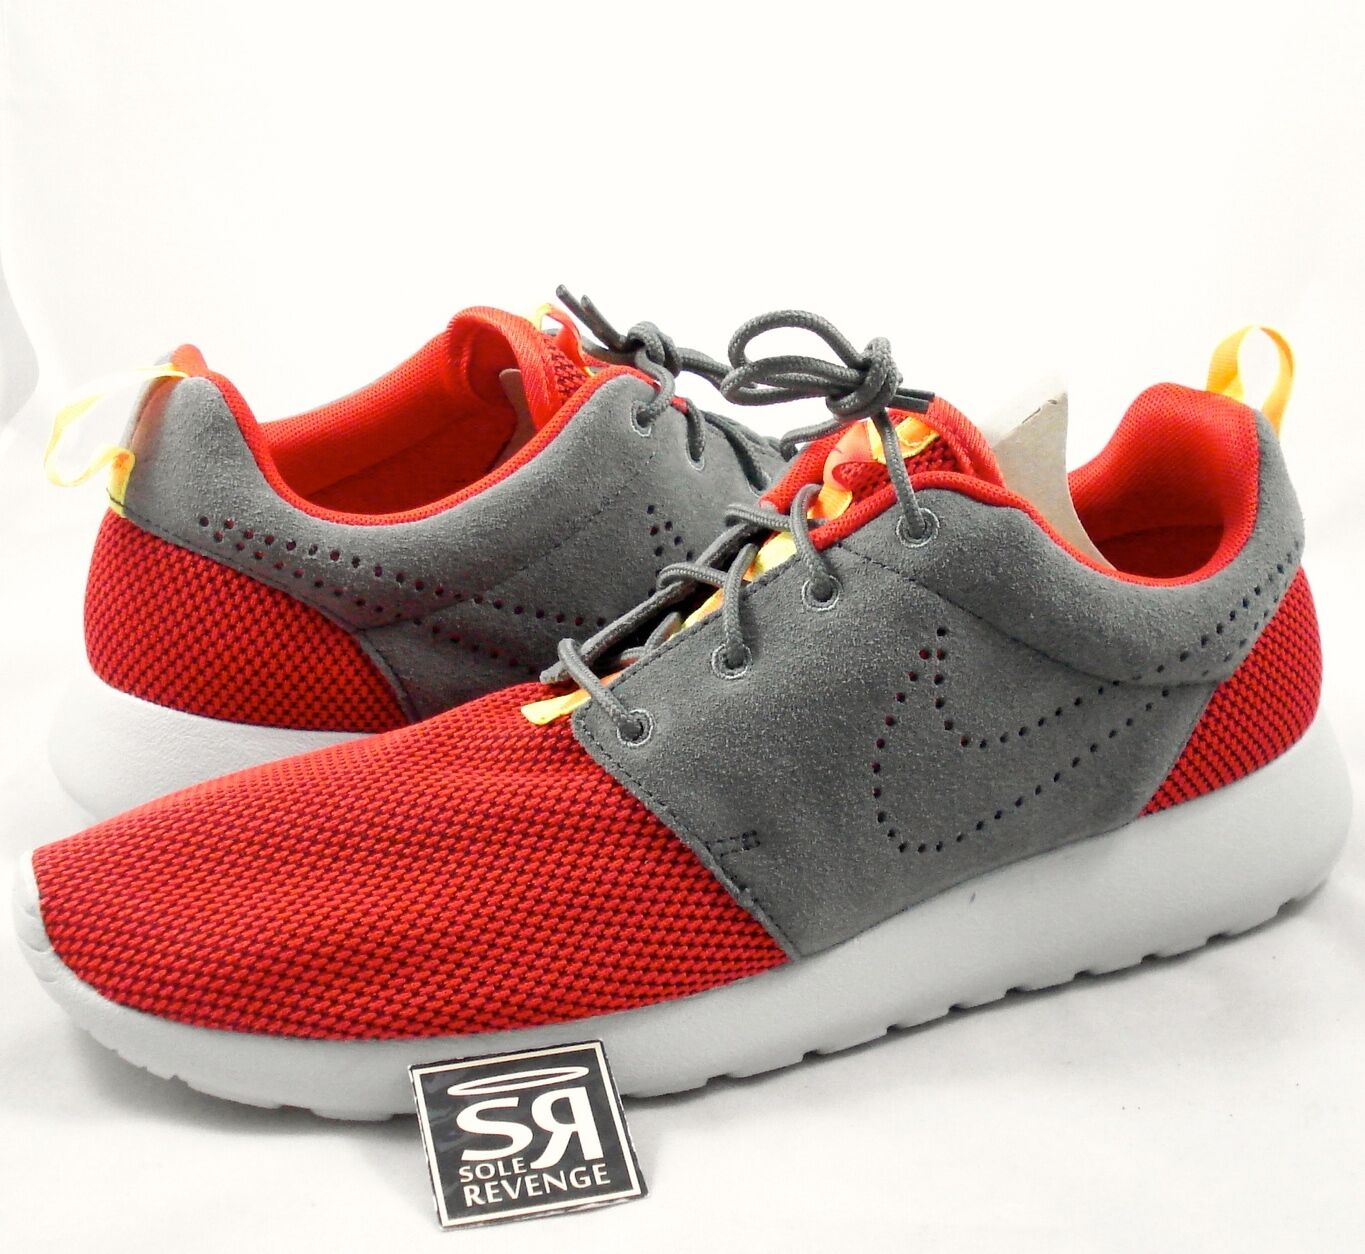 NEW Mens Nike Roshe Run Shoes Chilling Red/Dark Pewter/Crimson 511881 608